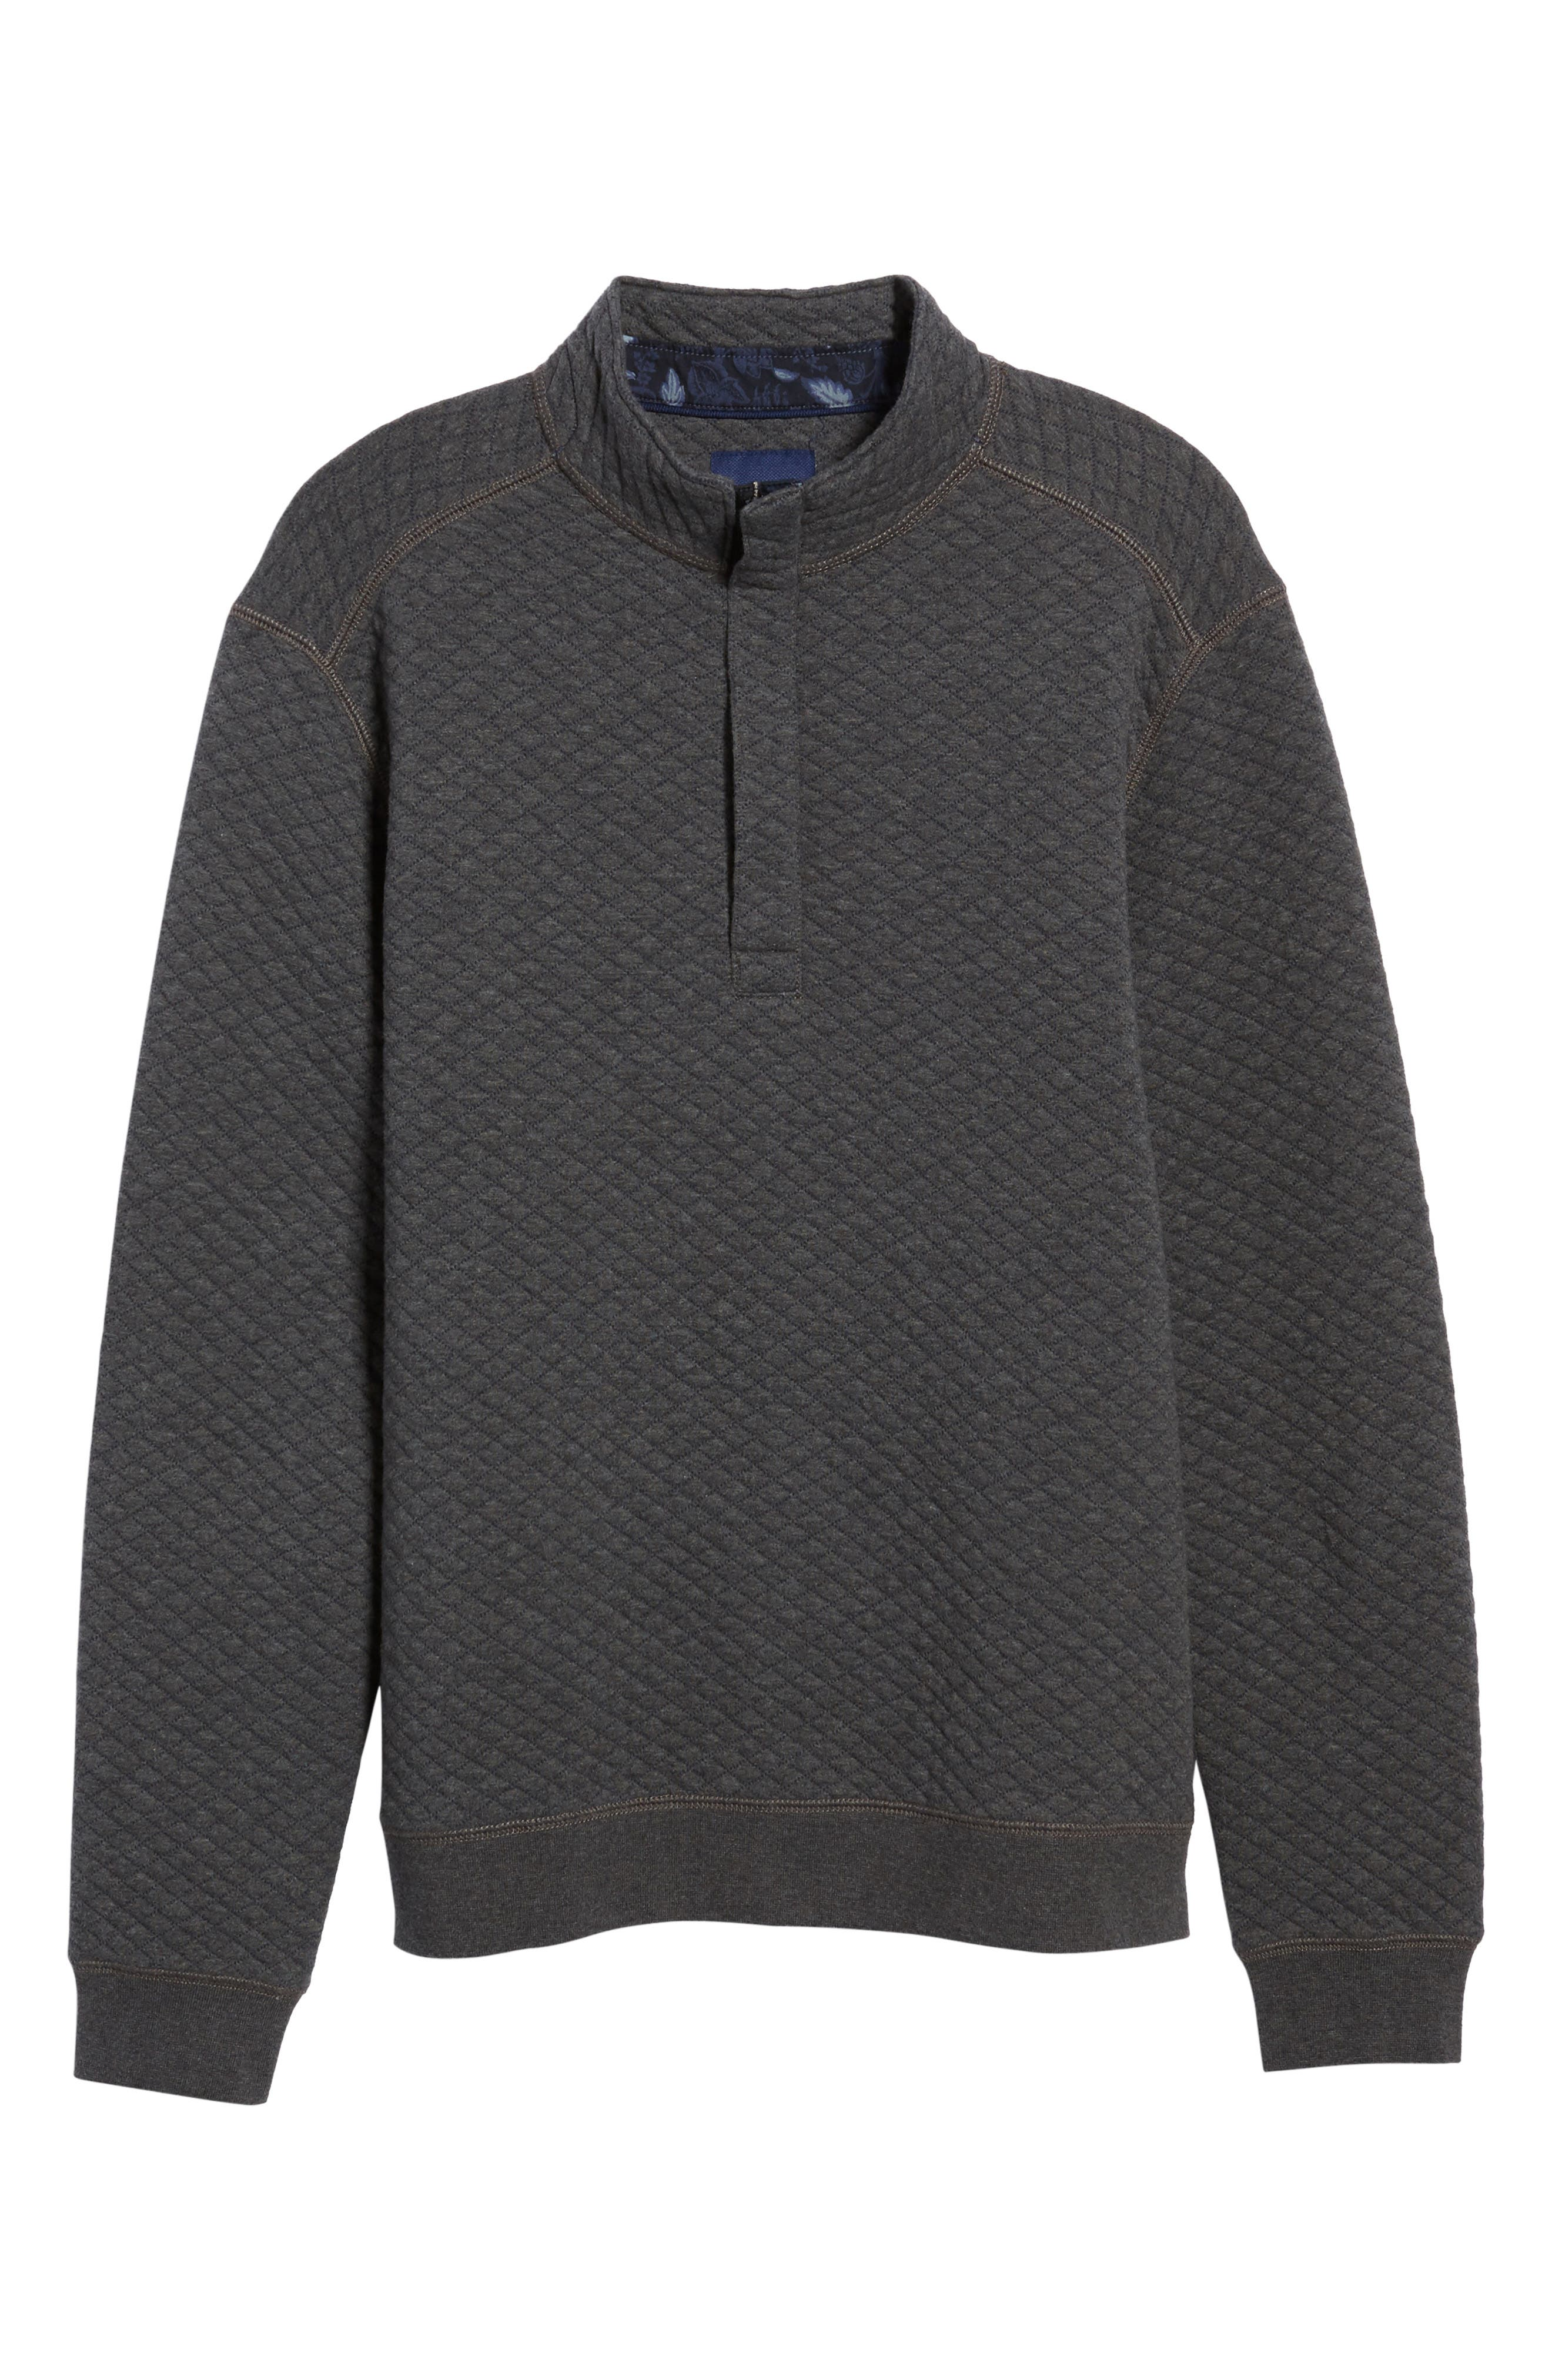 TOMMY BAHAMA, Quiltessential Standard Fit Quarter Zip Pullover, Alternate thumbnail 6, color, CHARCOAL HEATHER